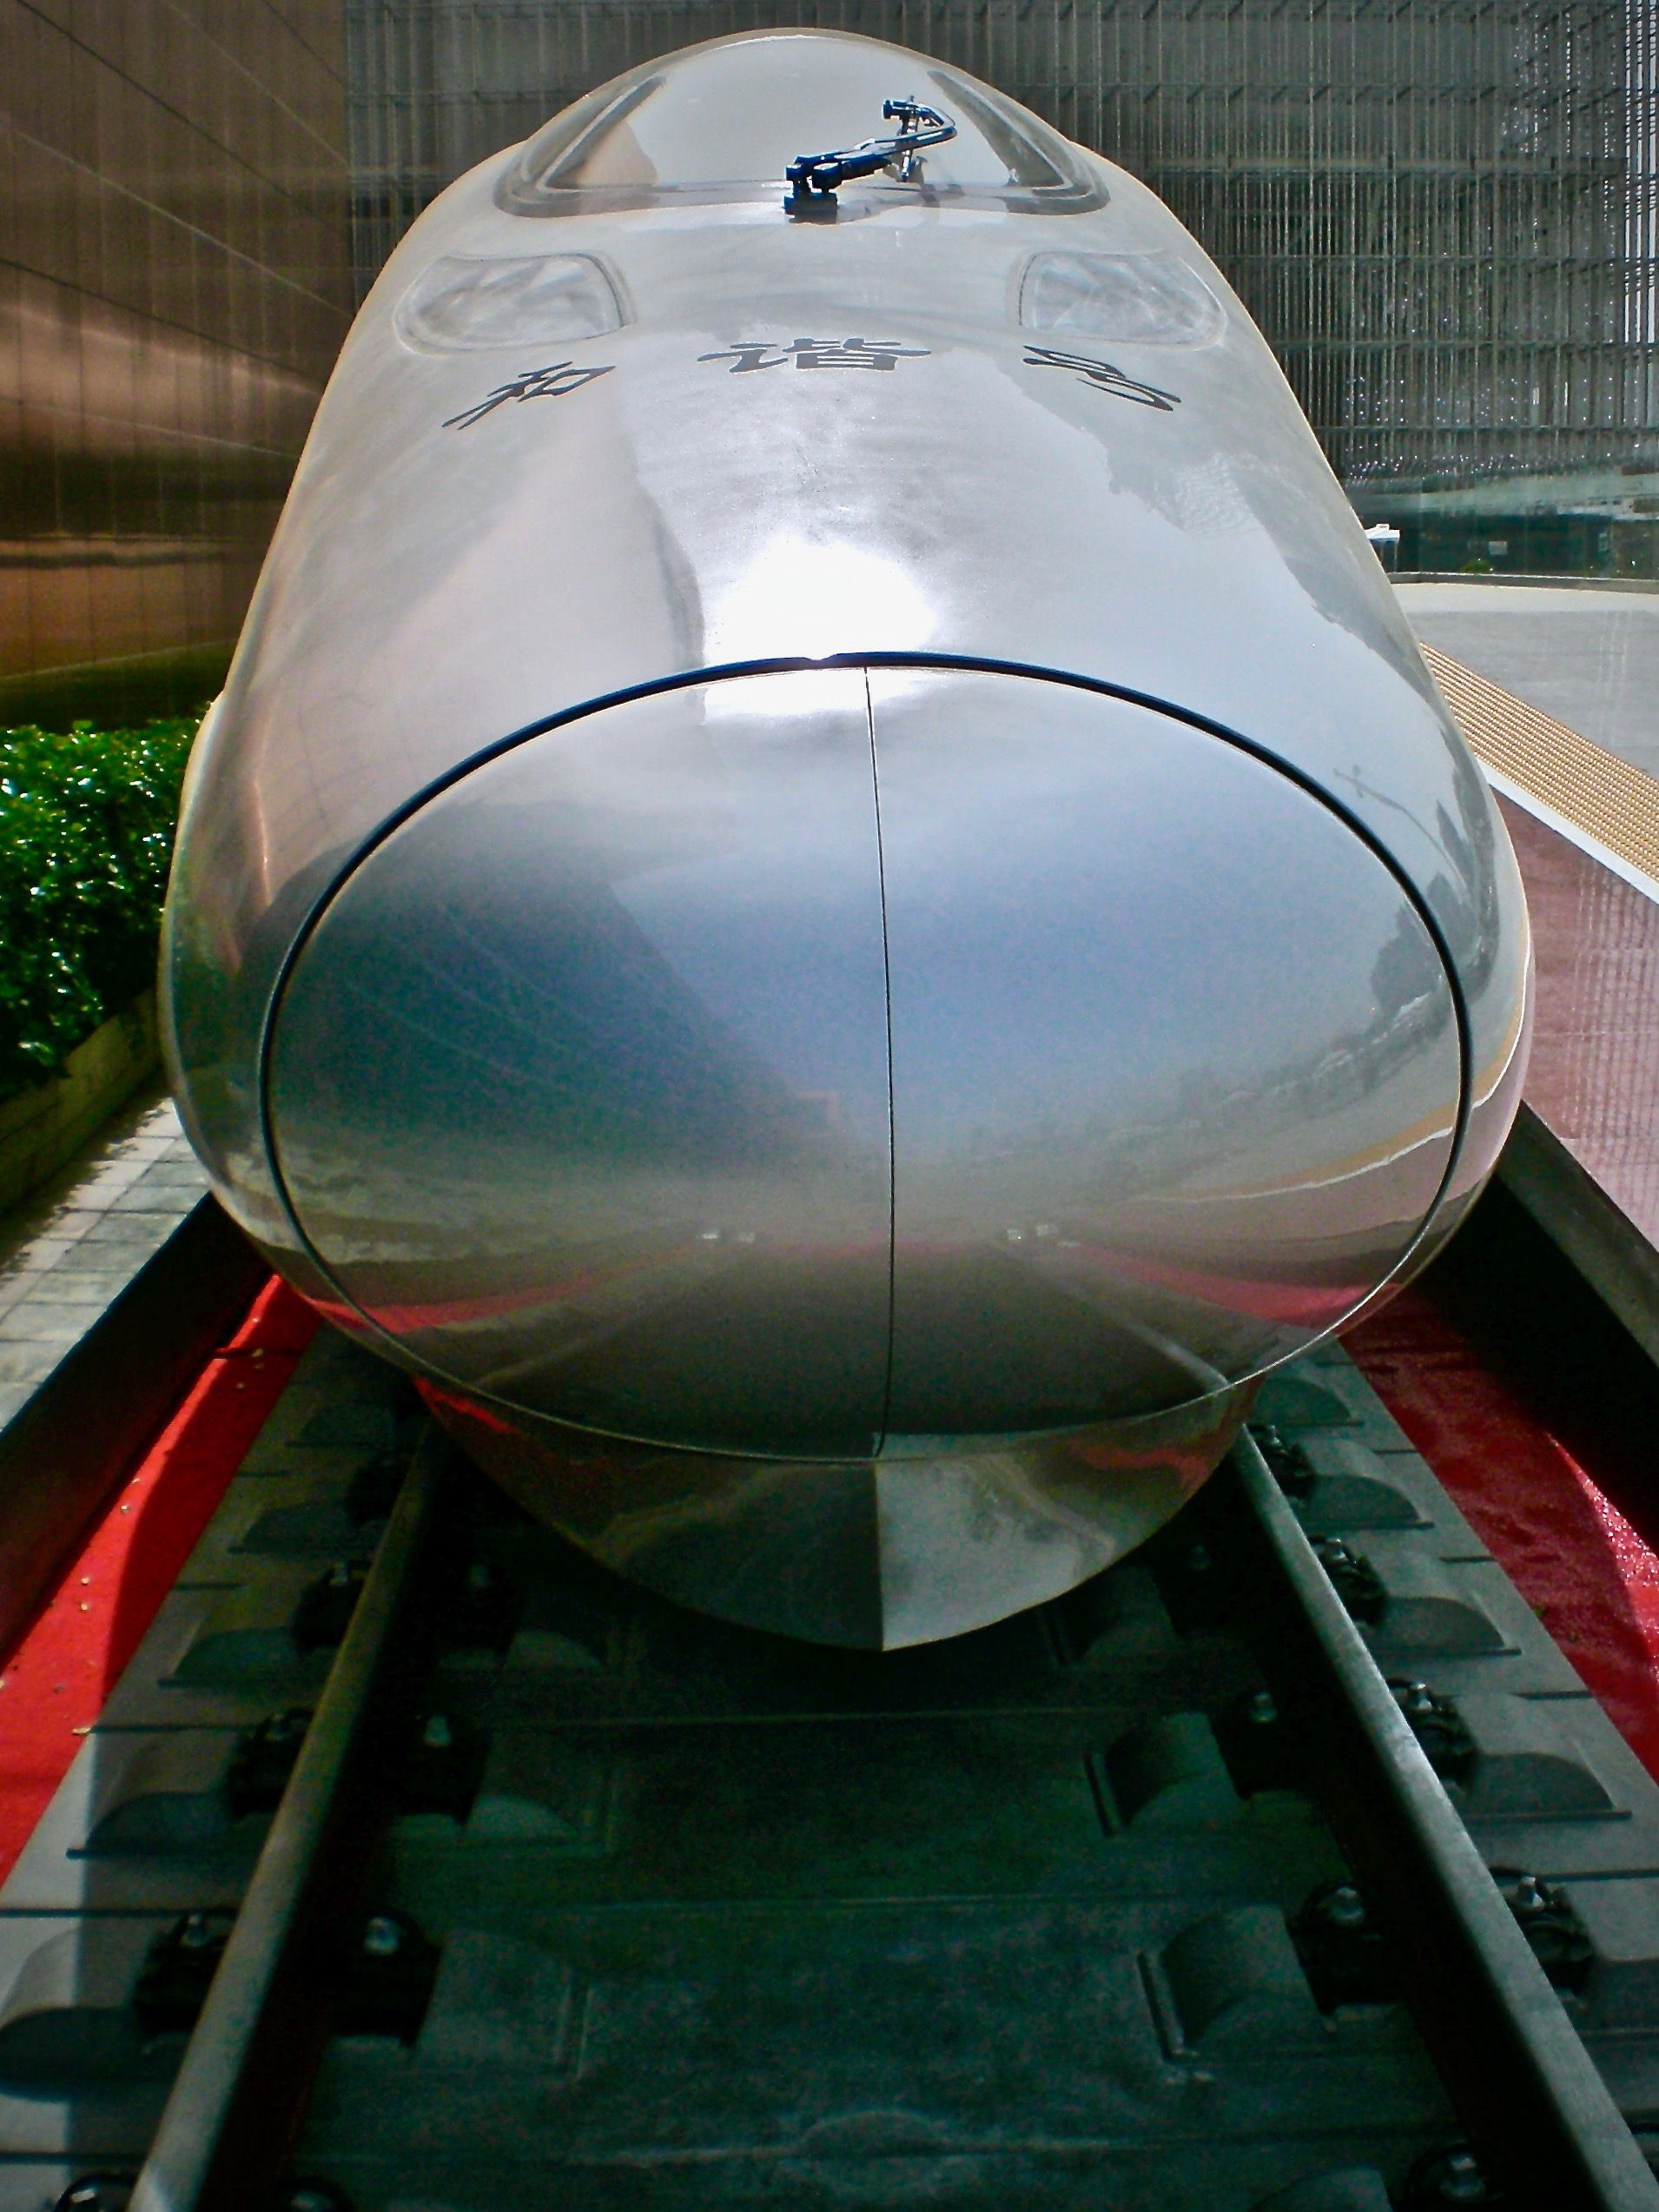 A Chinese high speed bullet train. (C) Remko Tanis